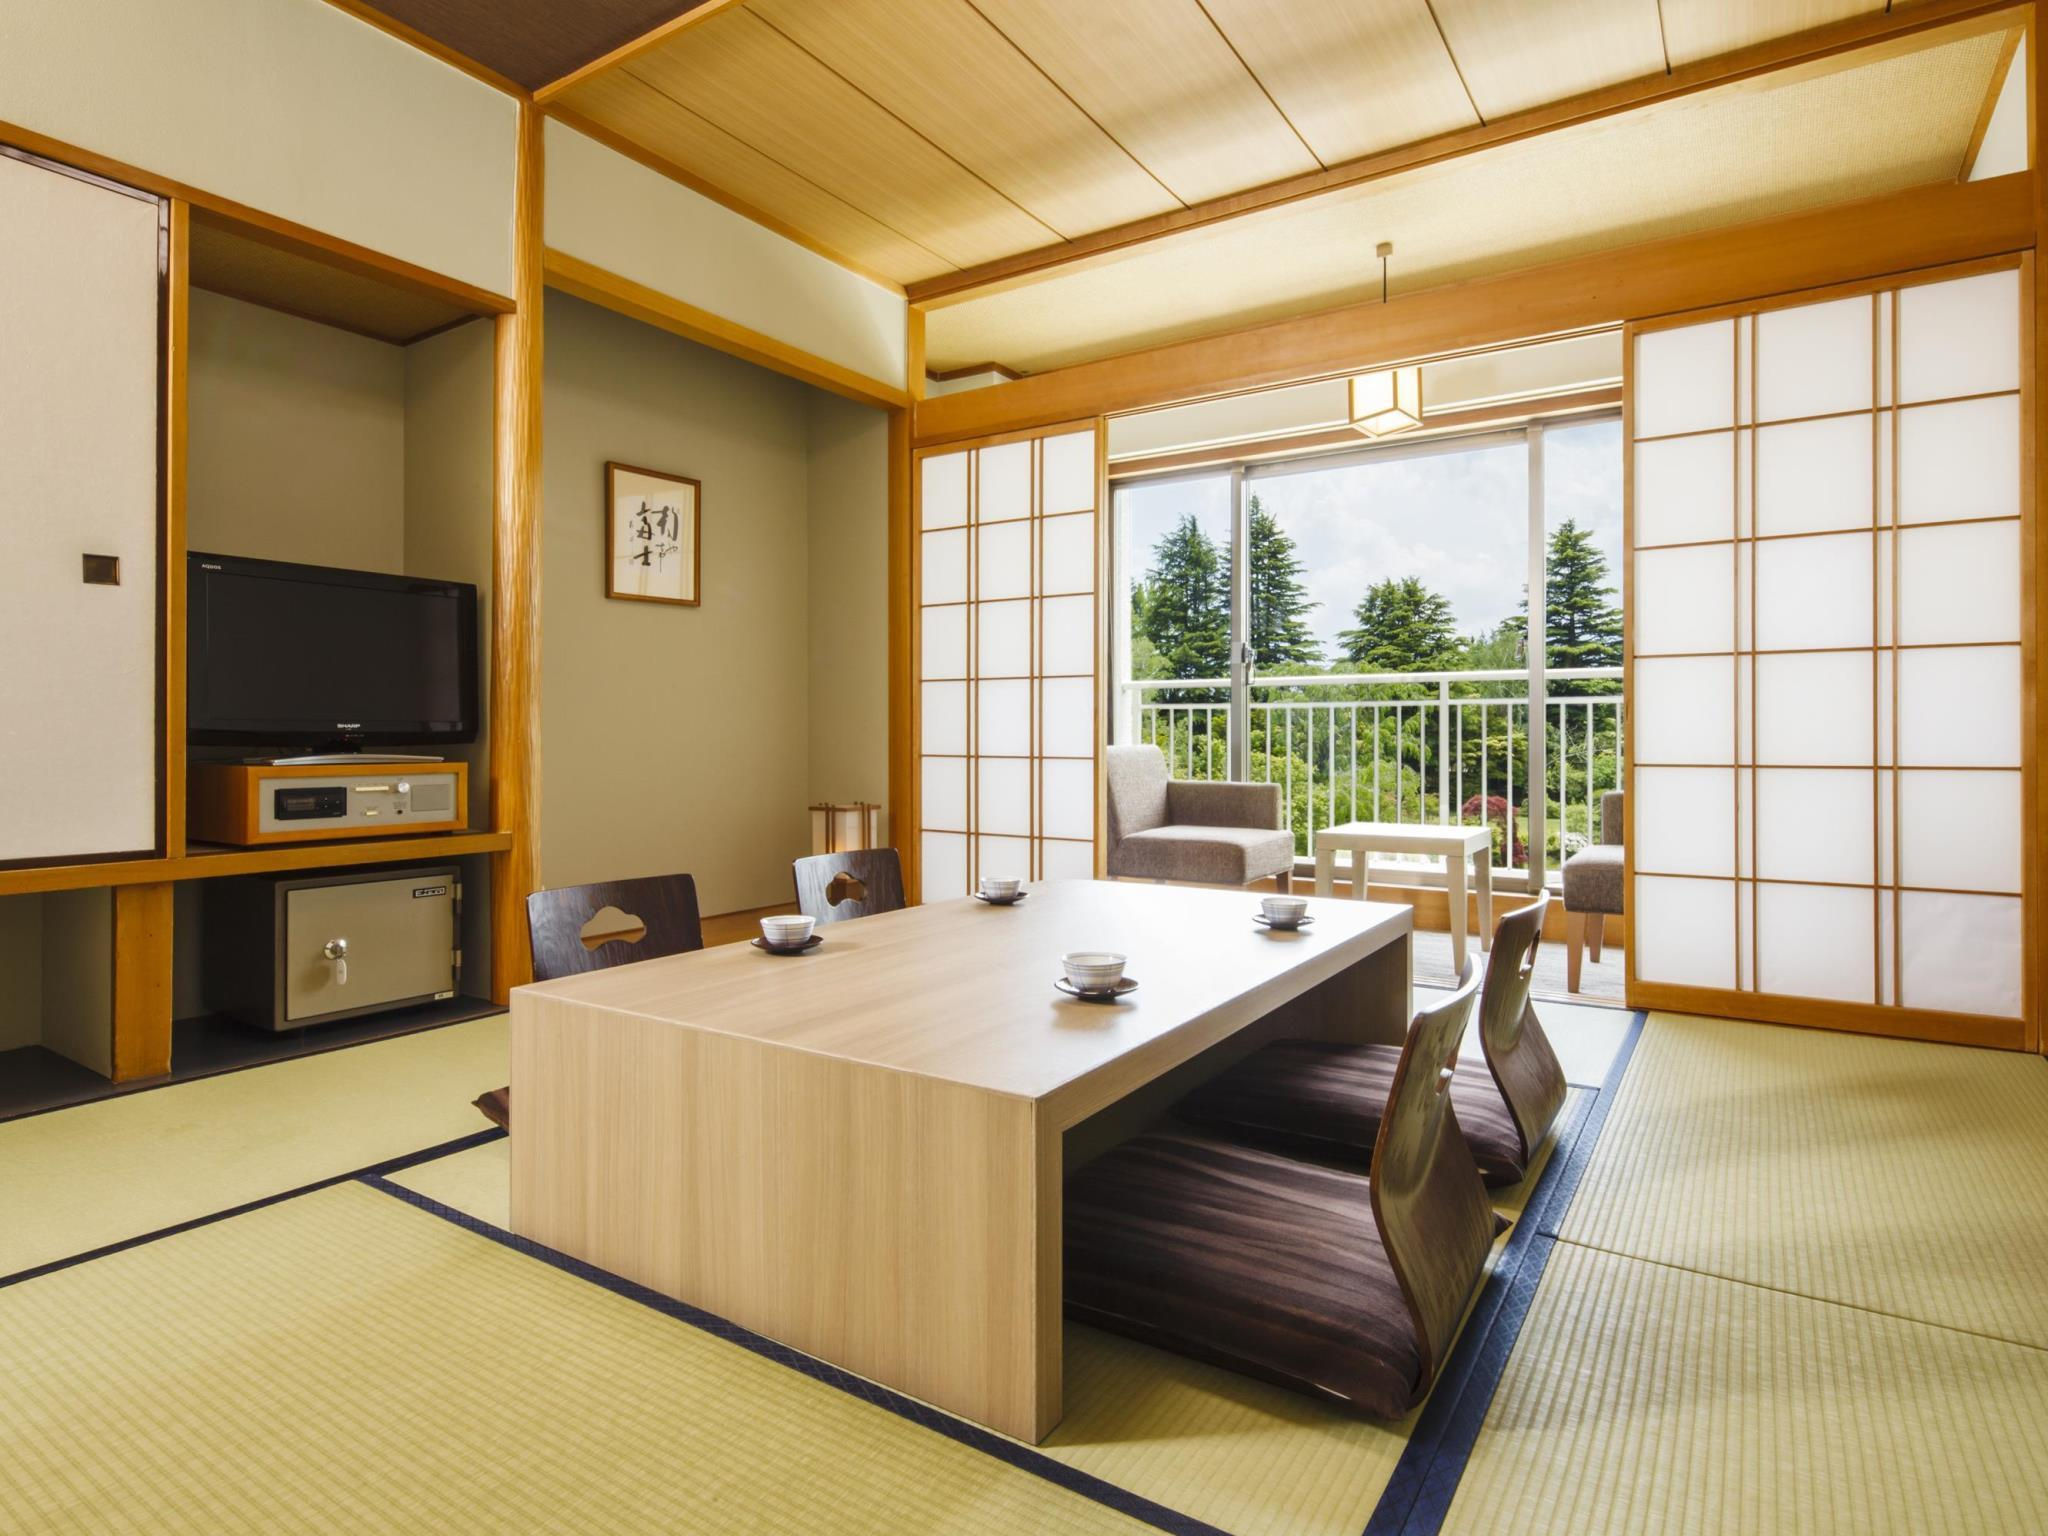 Moderate Garden View Japanese Style Room for 4 People